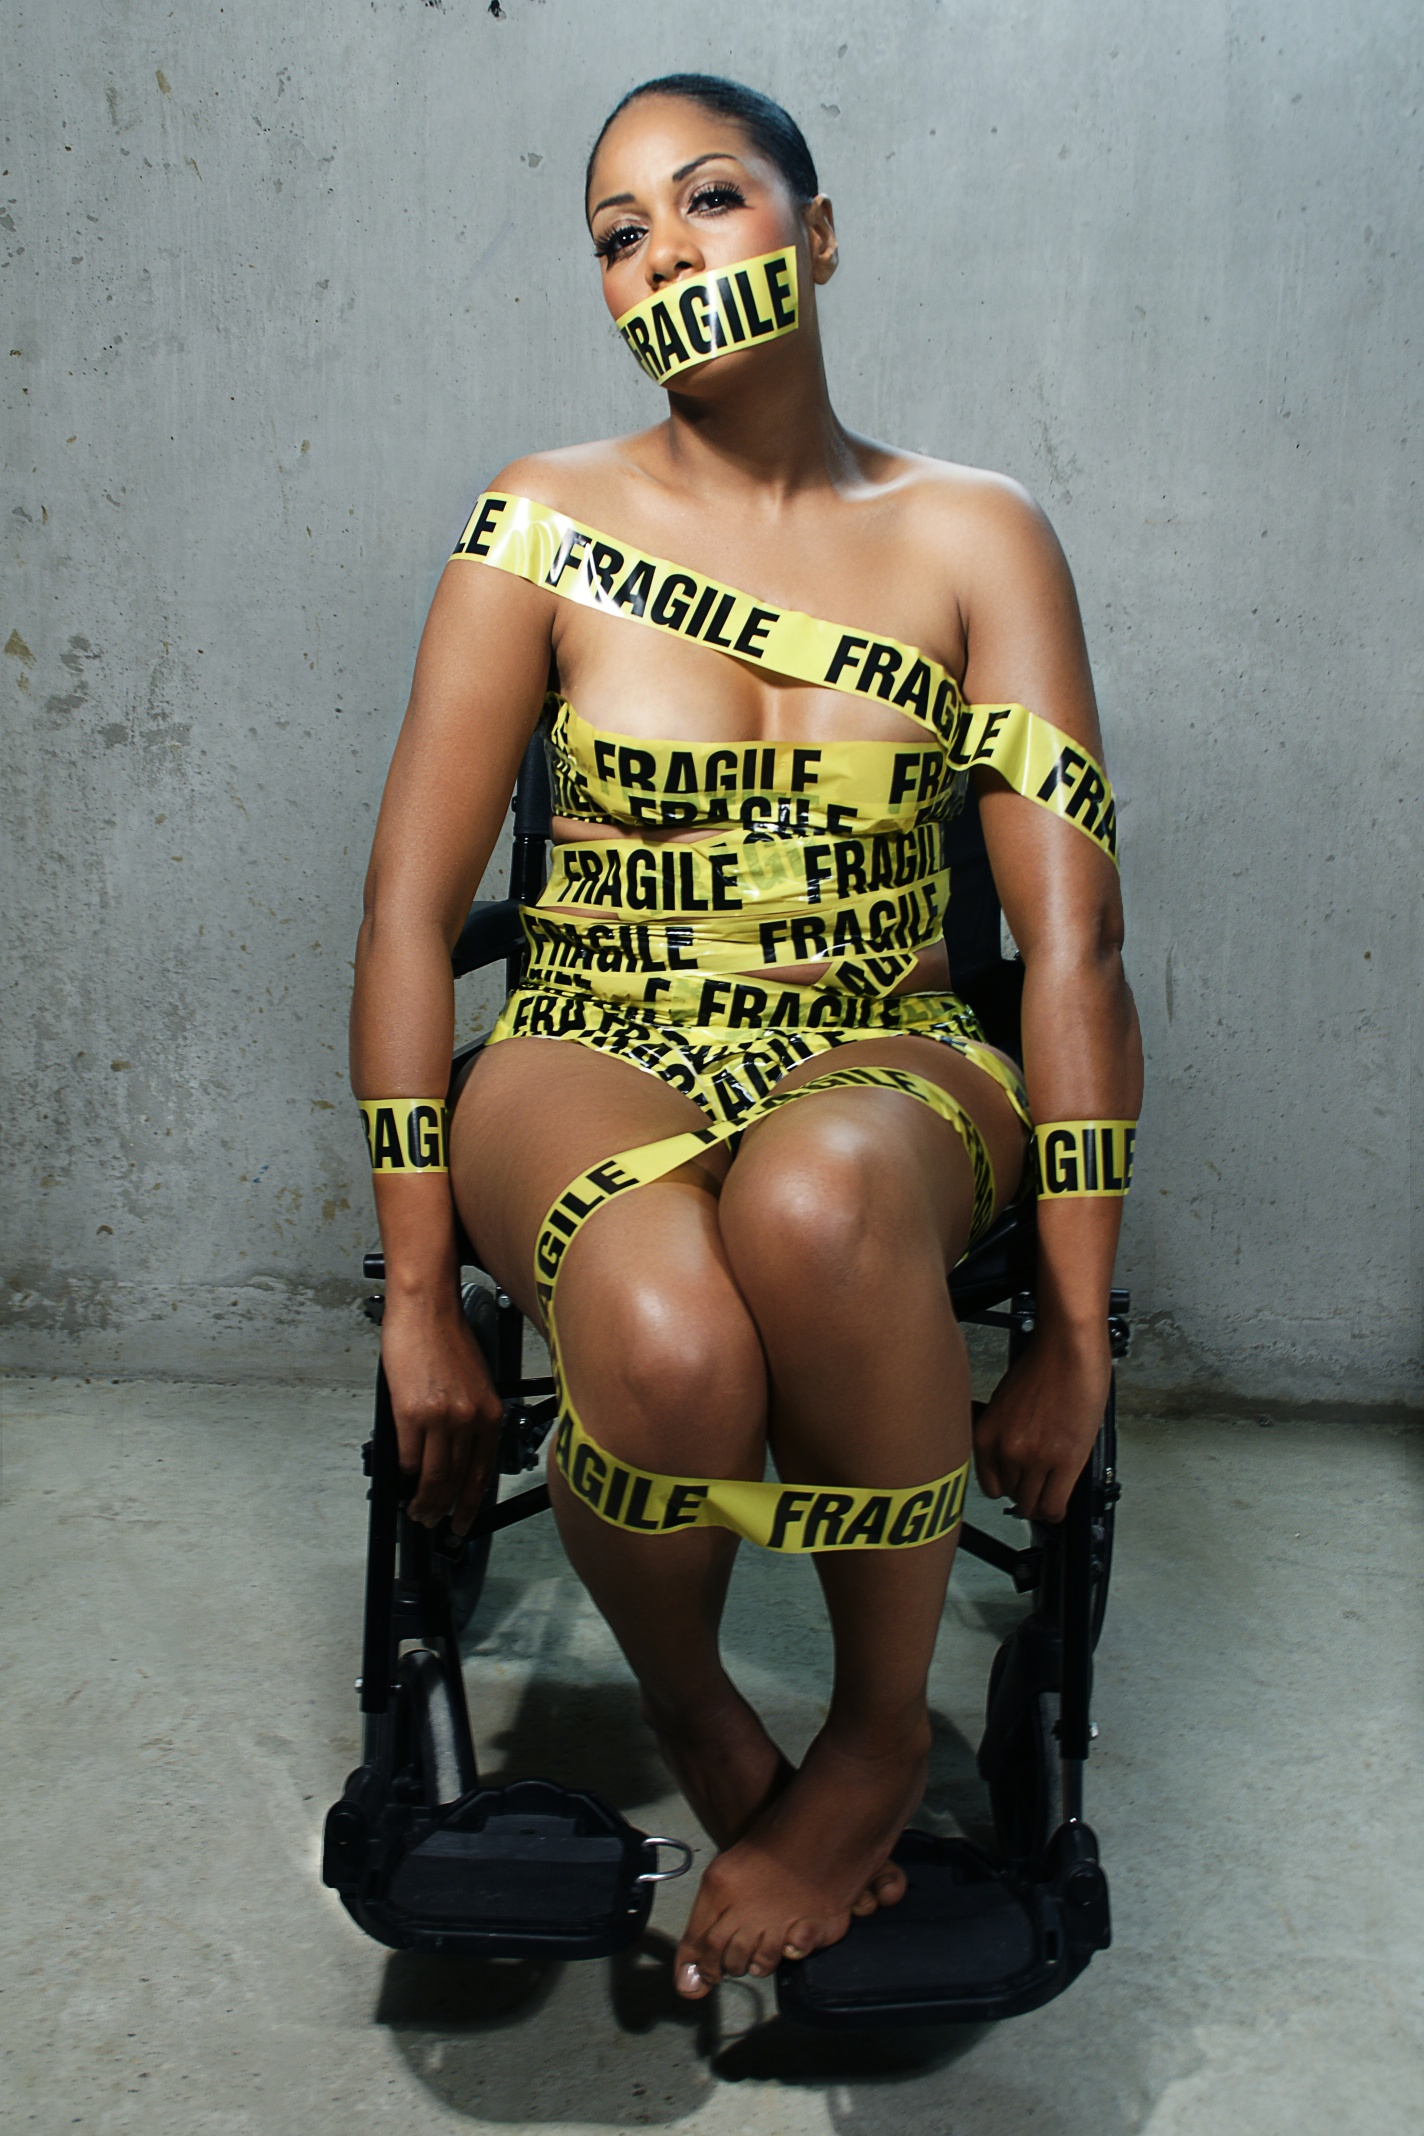 Fragile, from Bound, by Anthony David King and Samona Naomi Williams